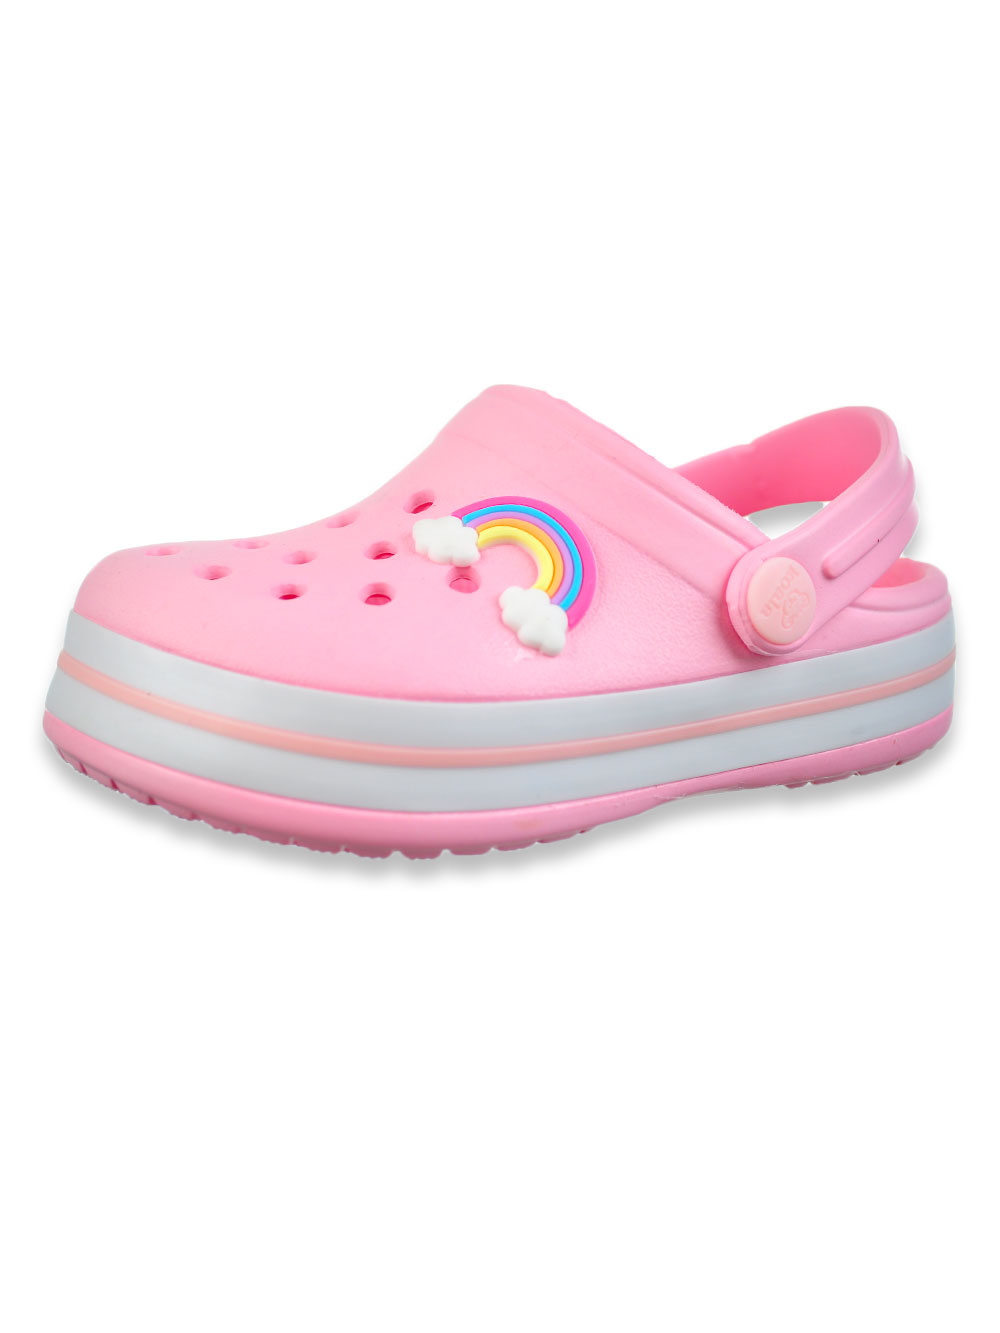 Baby Girls' Rainbow Cloud Clogs Shoes